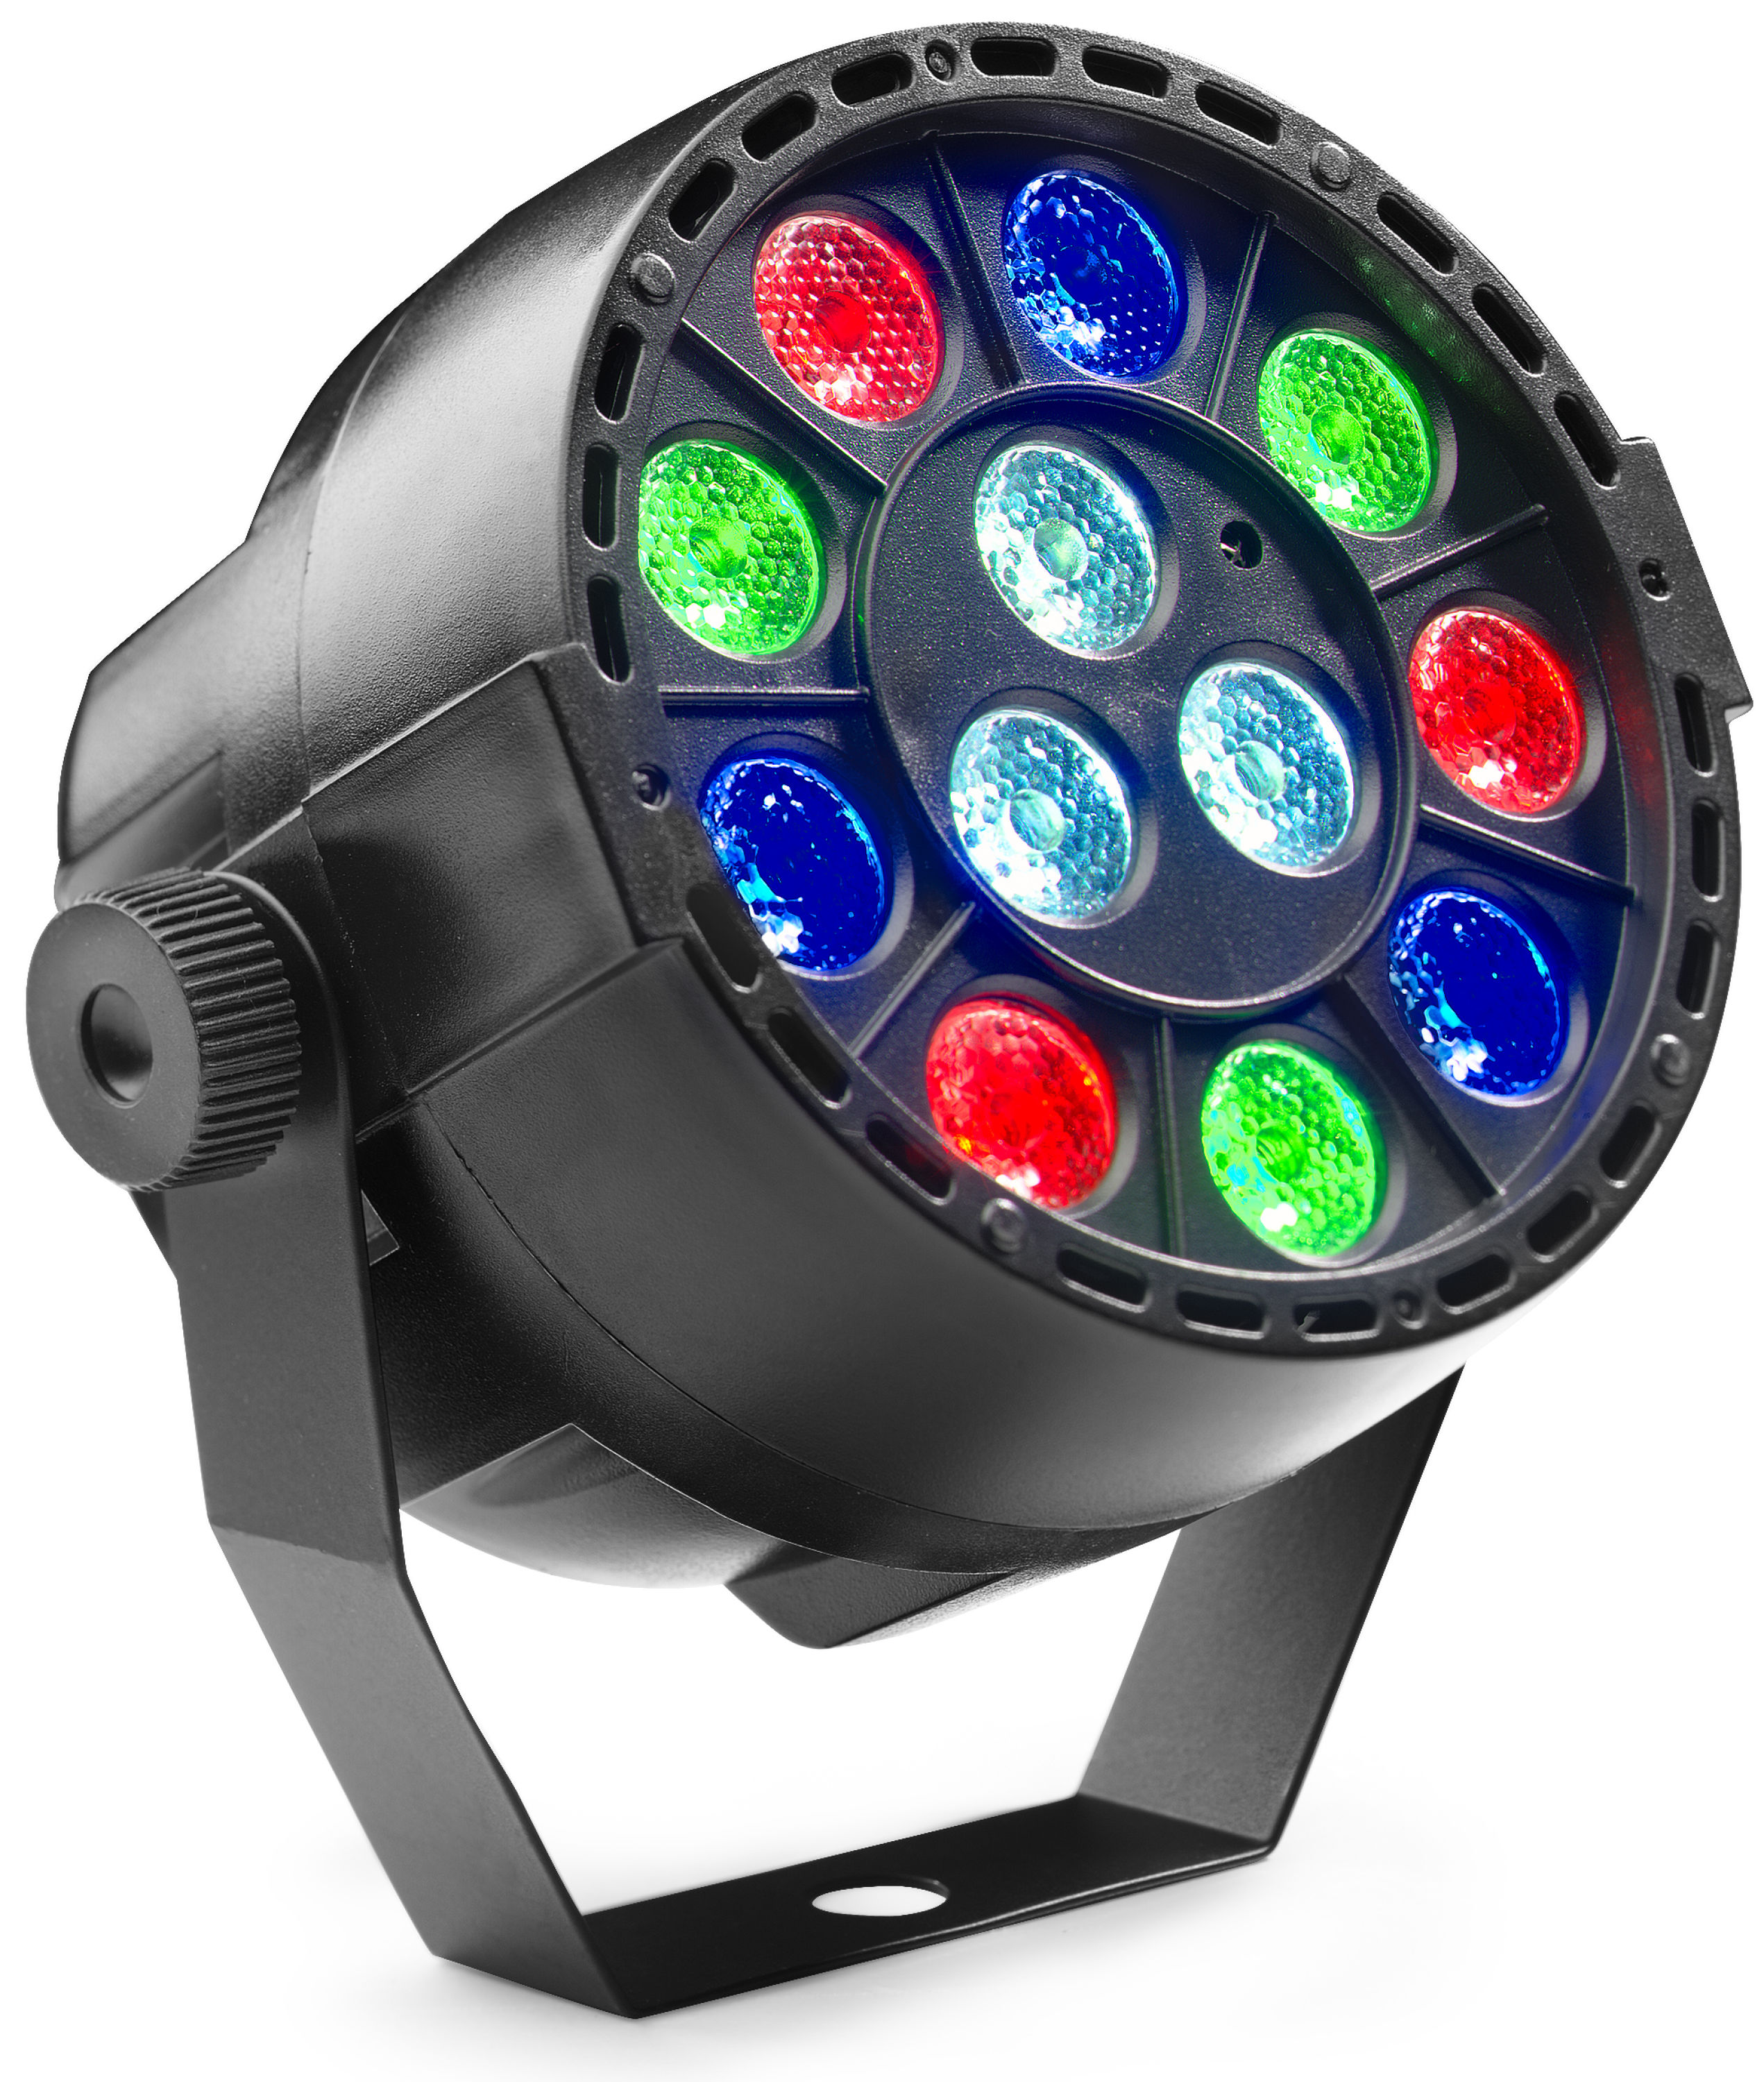 Stagg SLI-BAT XS-2, ECO PAR 4x 8W HCL LED, AKKU